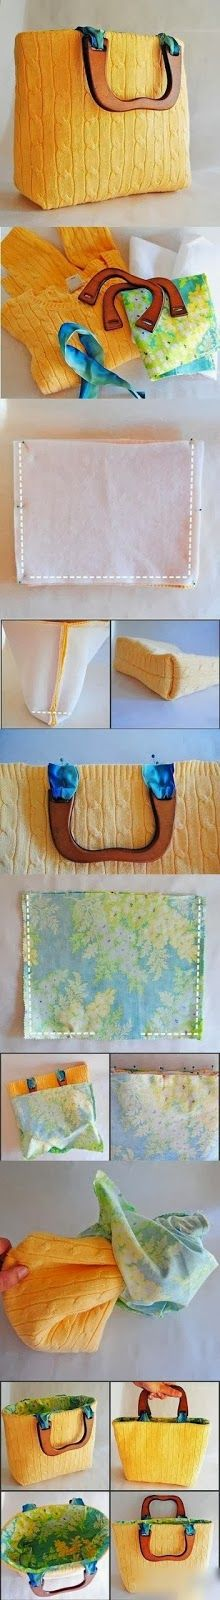 My DIY Projects: How To Make a bag from old sweater